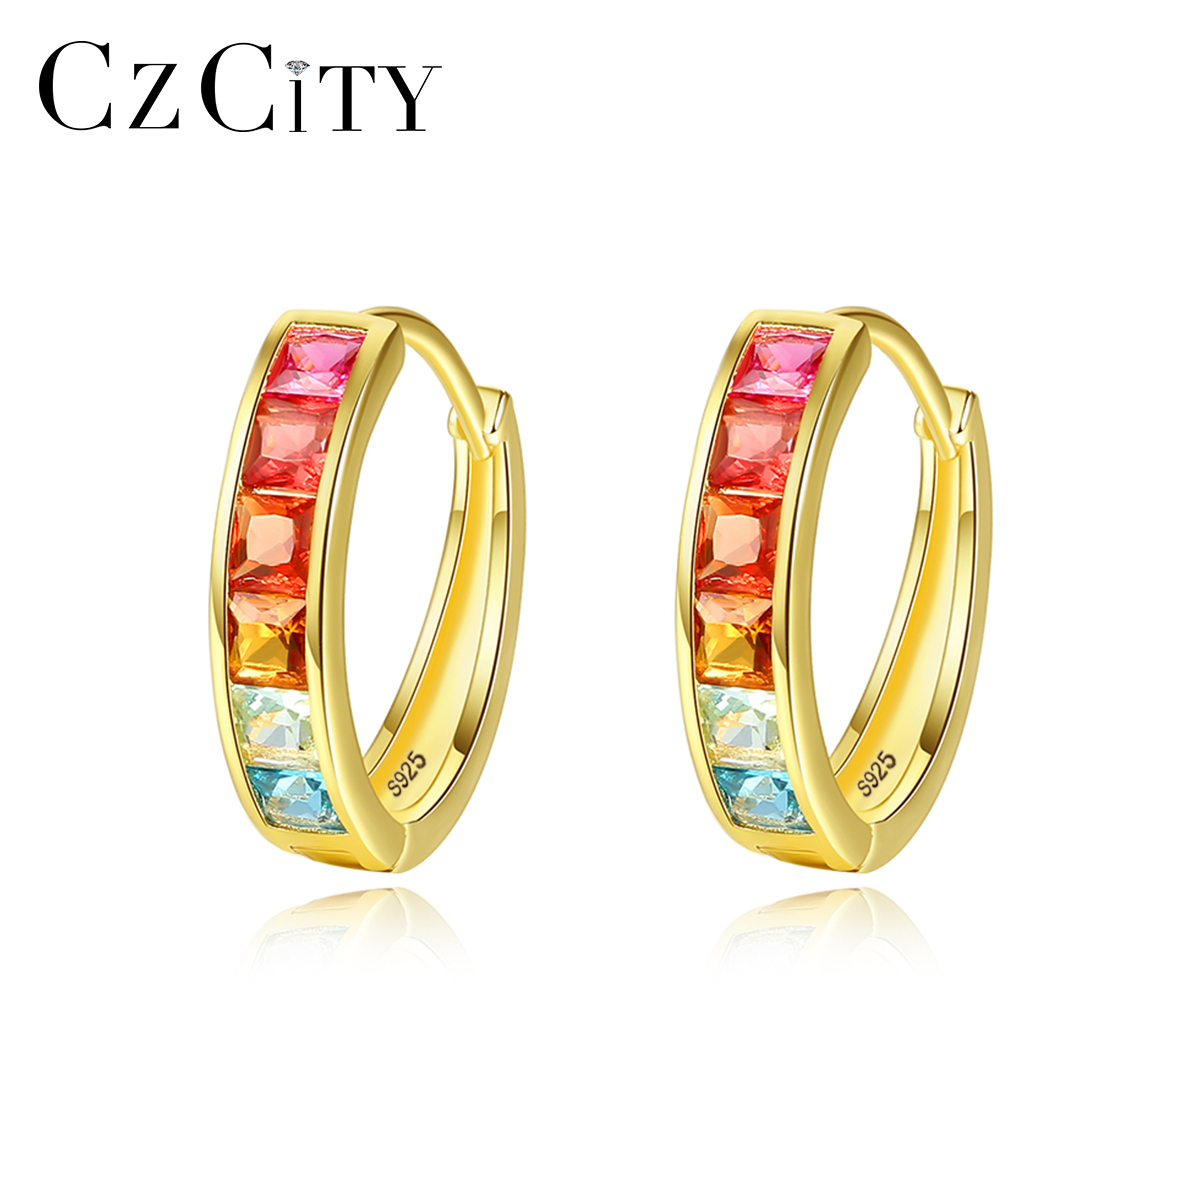 CZCITY Round Colorful Topaz Hoop Earrings for Women Fine Jewelry 925 Sterling Silver Boucle D'Oreille Femme Bijoux Gifts SE0124